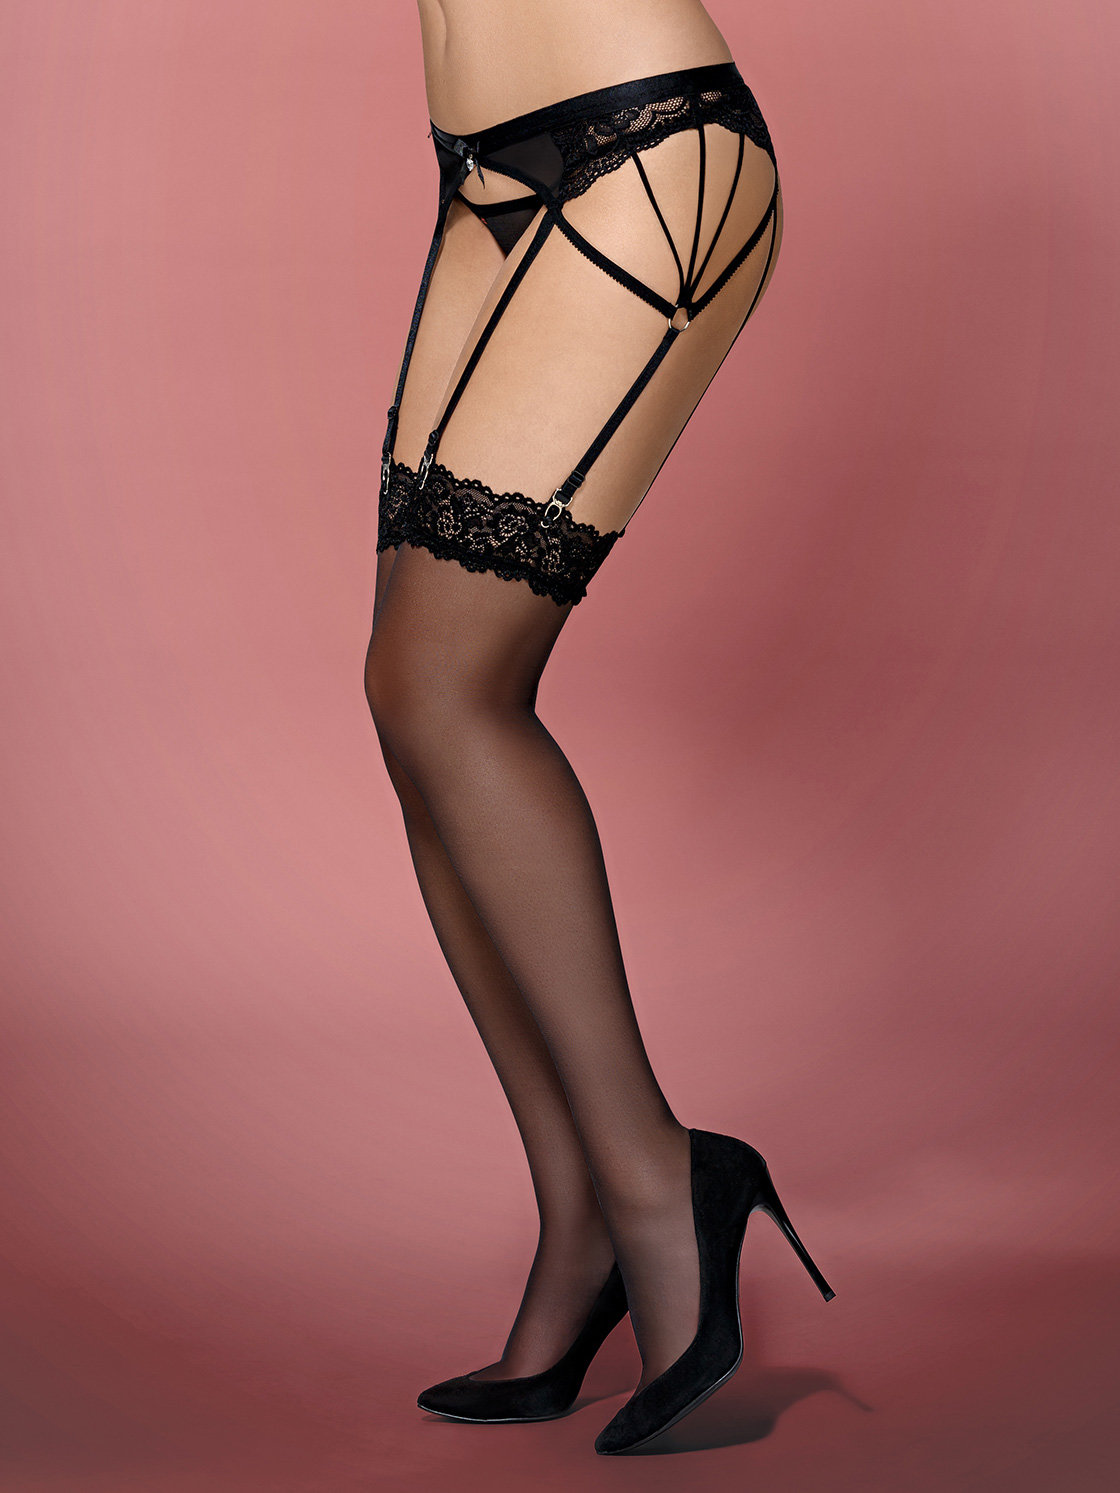 Dresuri 852-STO-1 stockings Negru de la Obsessive